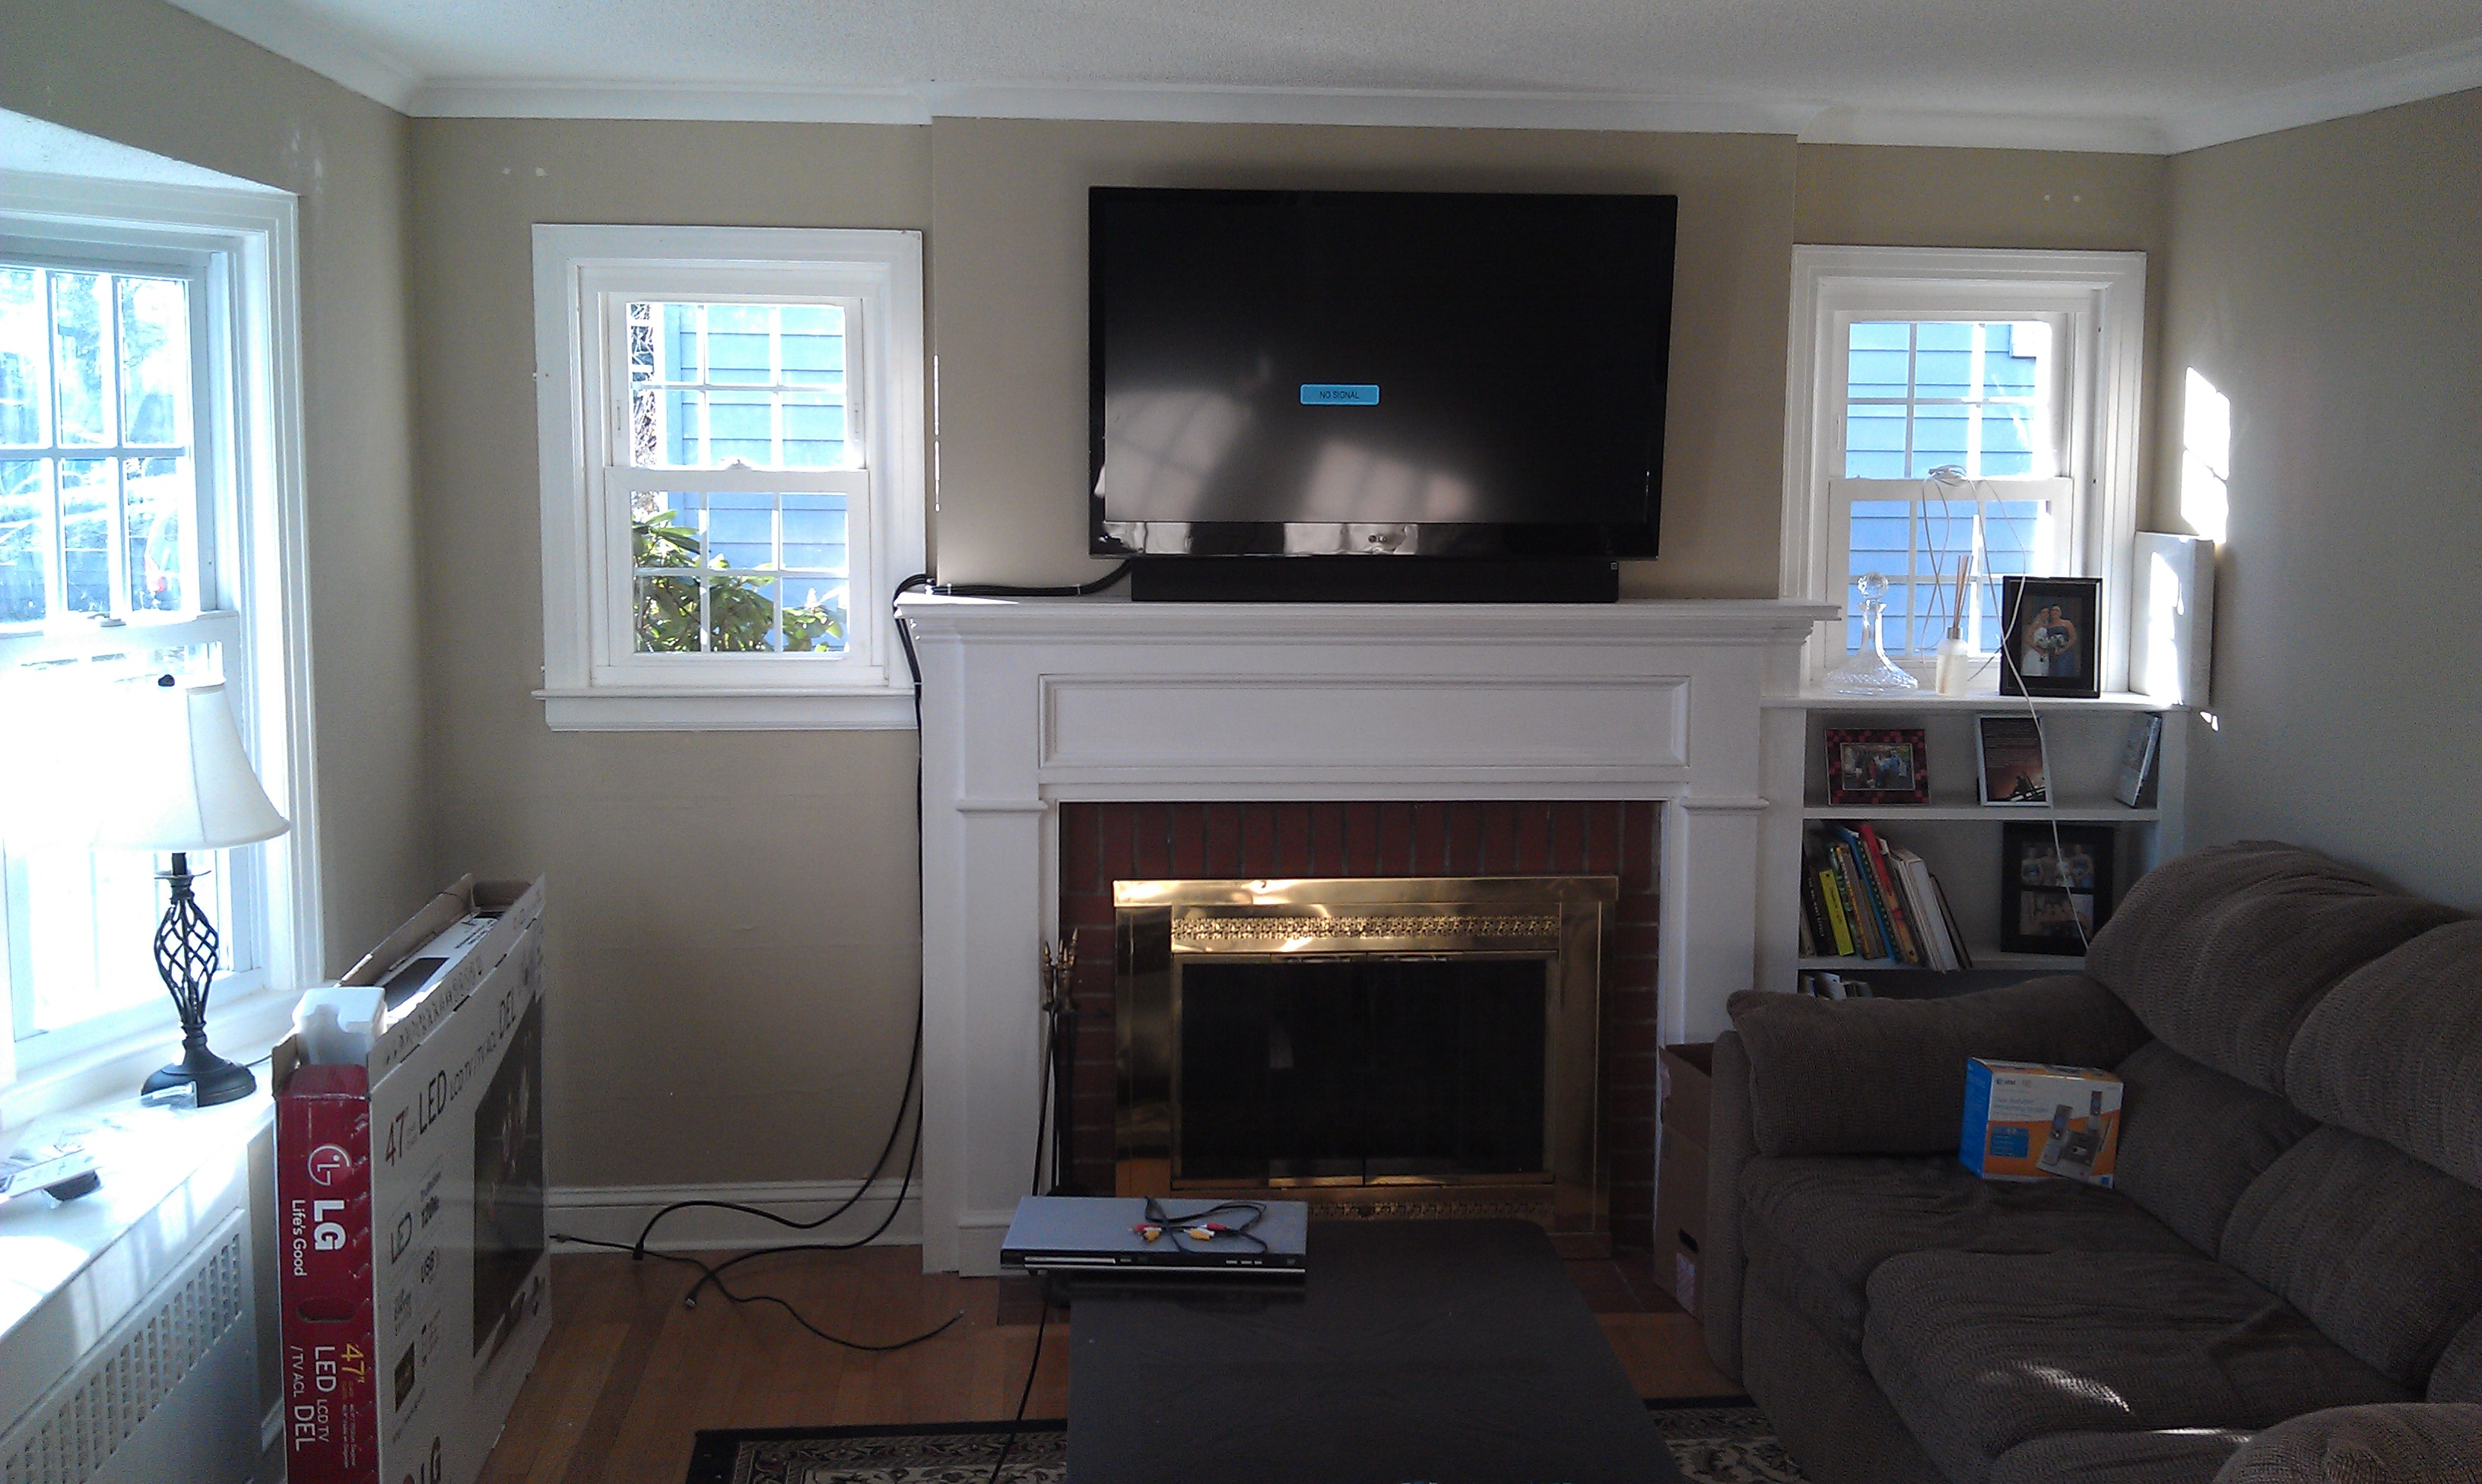 wethersfield ct mount tv above fireplace home theater installation. Black Bedroom Furniture Sets. Home Design Ideas